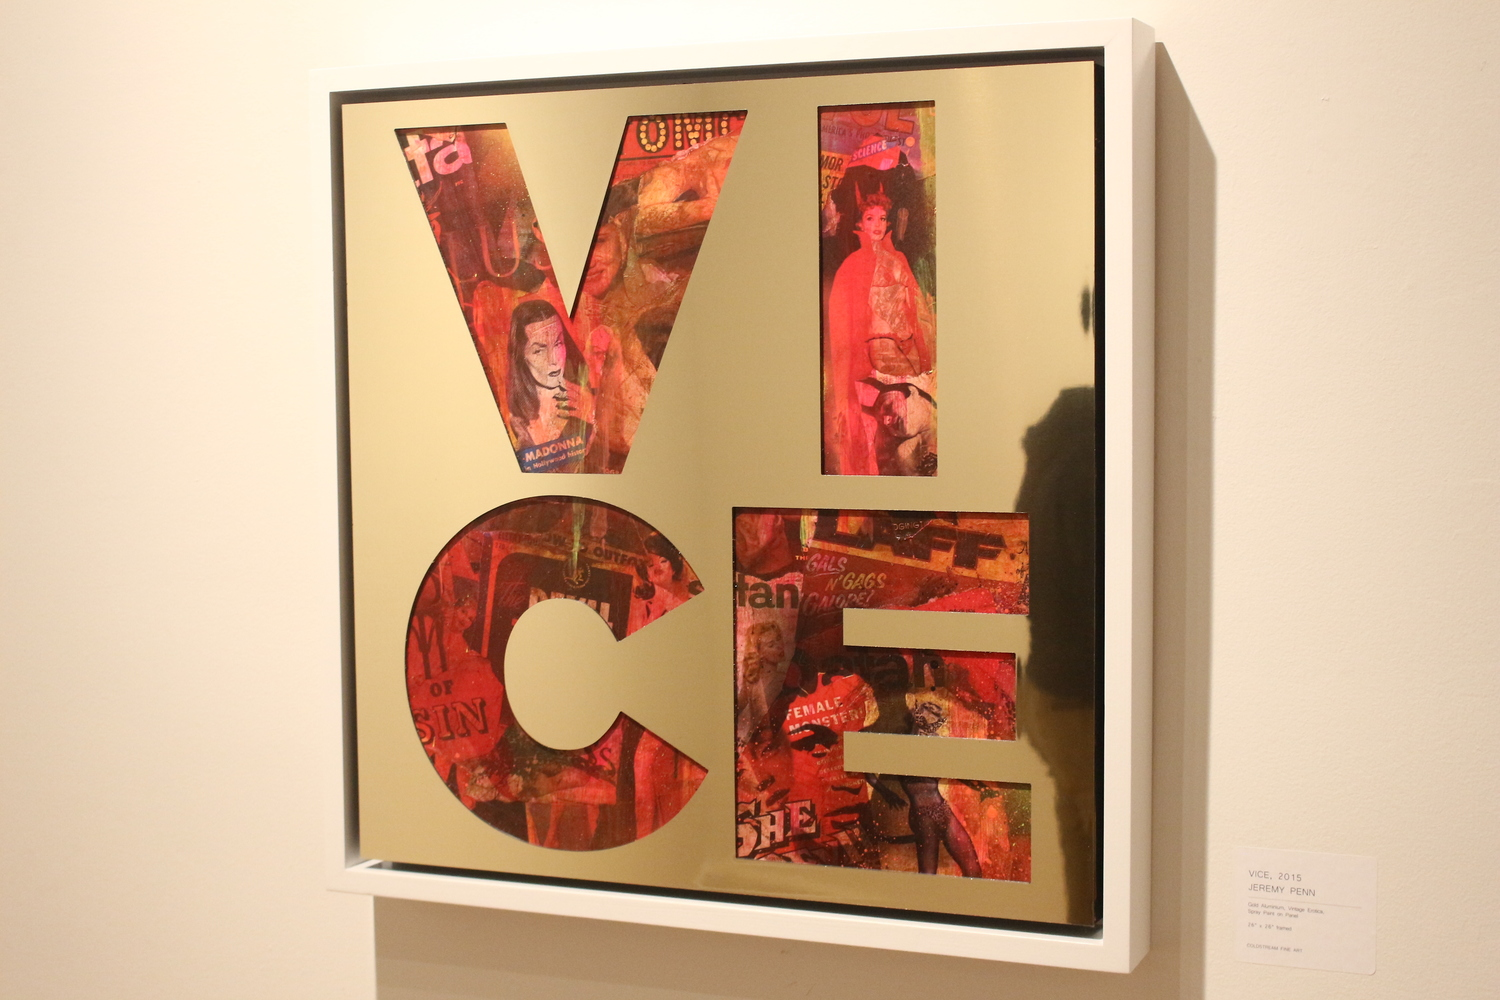 Vice , 2015, gold aluminium, vintage erotica and spray paint on panel, 26 x 26 inches  (inquire)